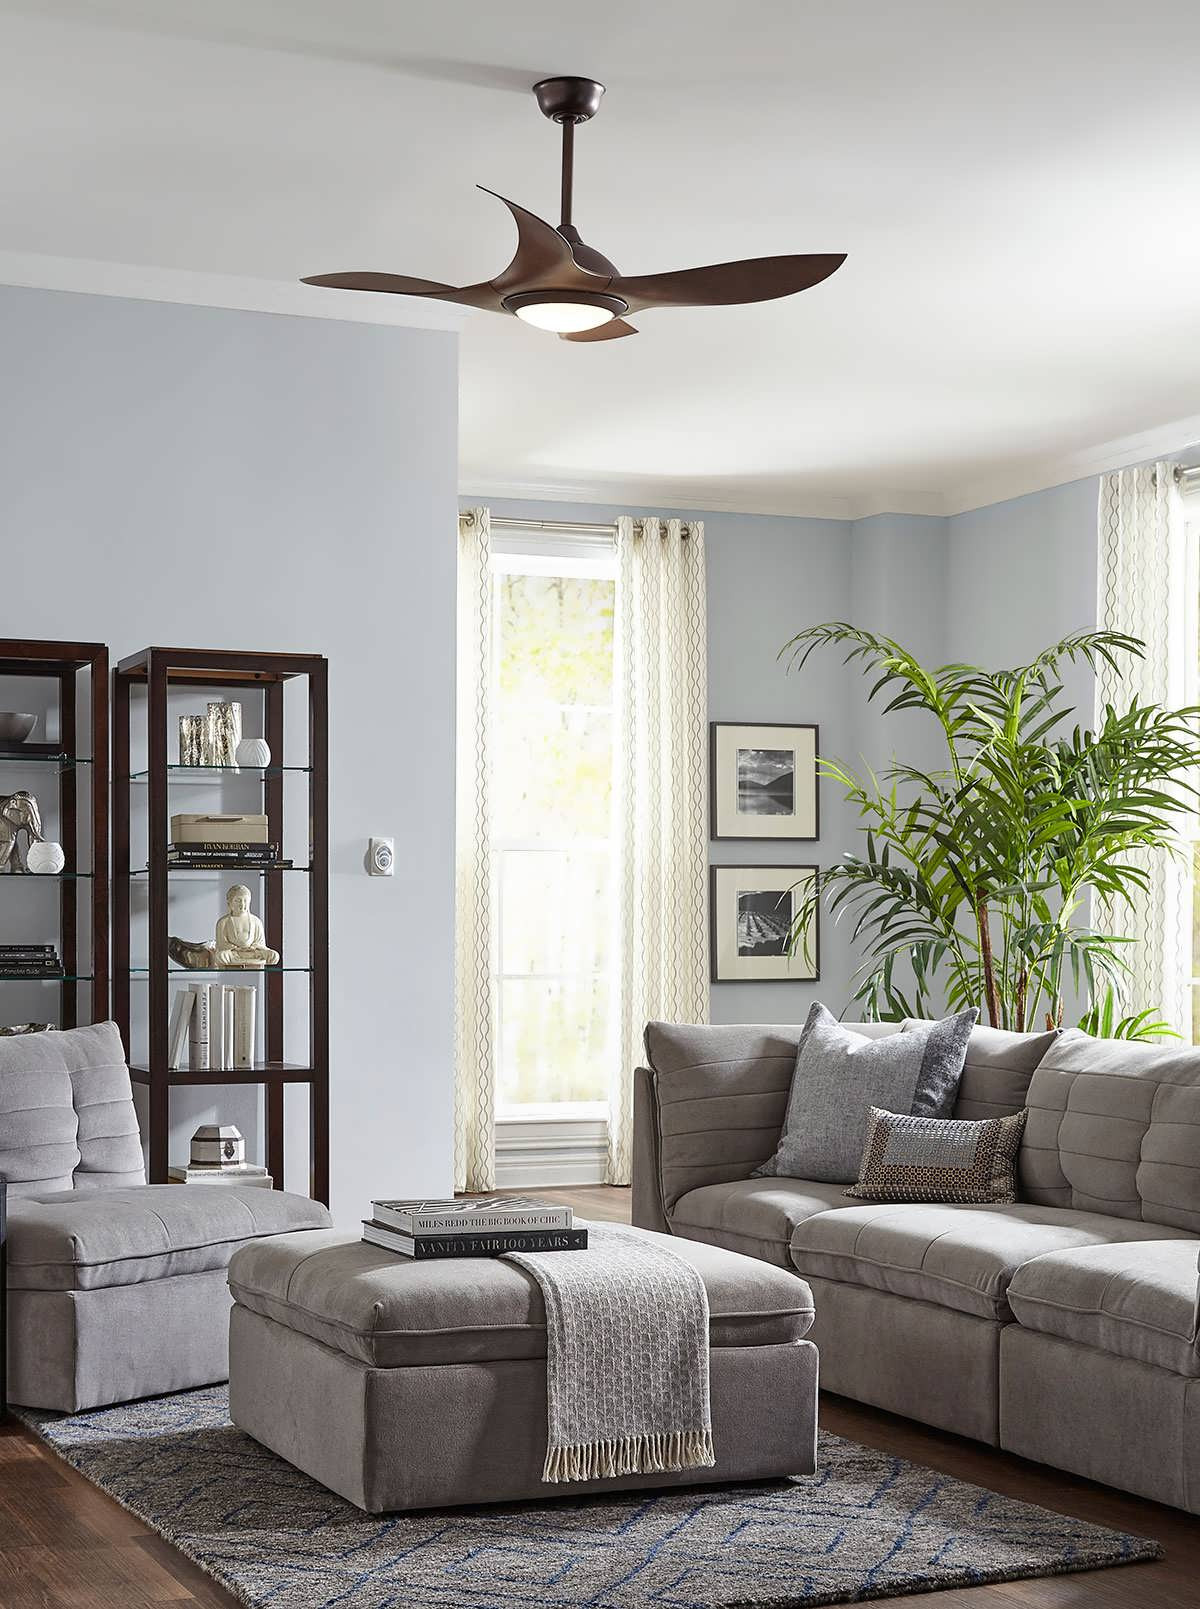 Best ideas about Living Room Ceiling Fan . Save or Pin Living Room White Ceiling Fan Unique Ceiling Fans With Now.